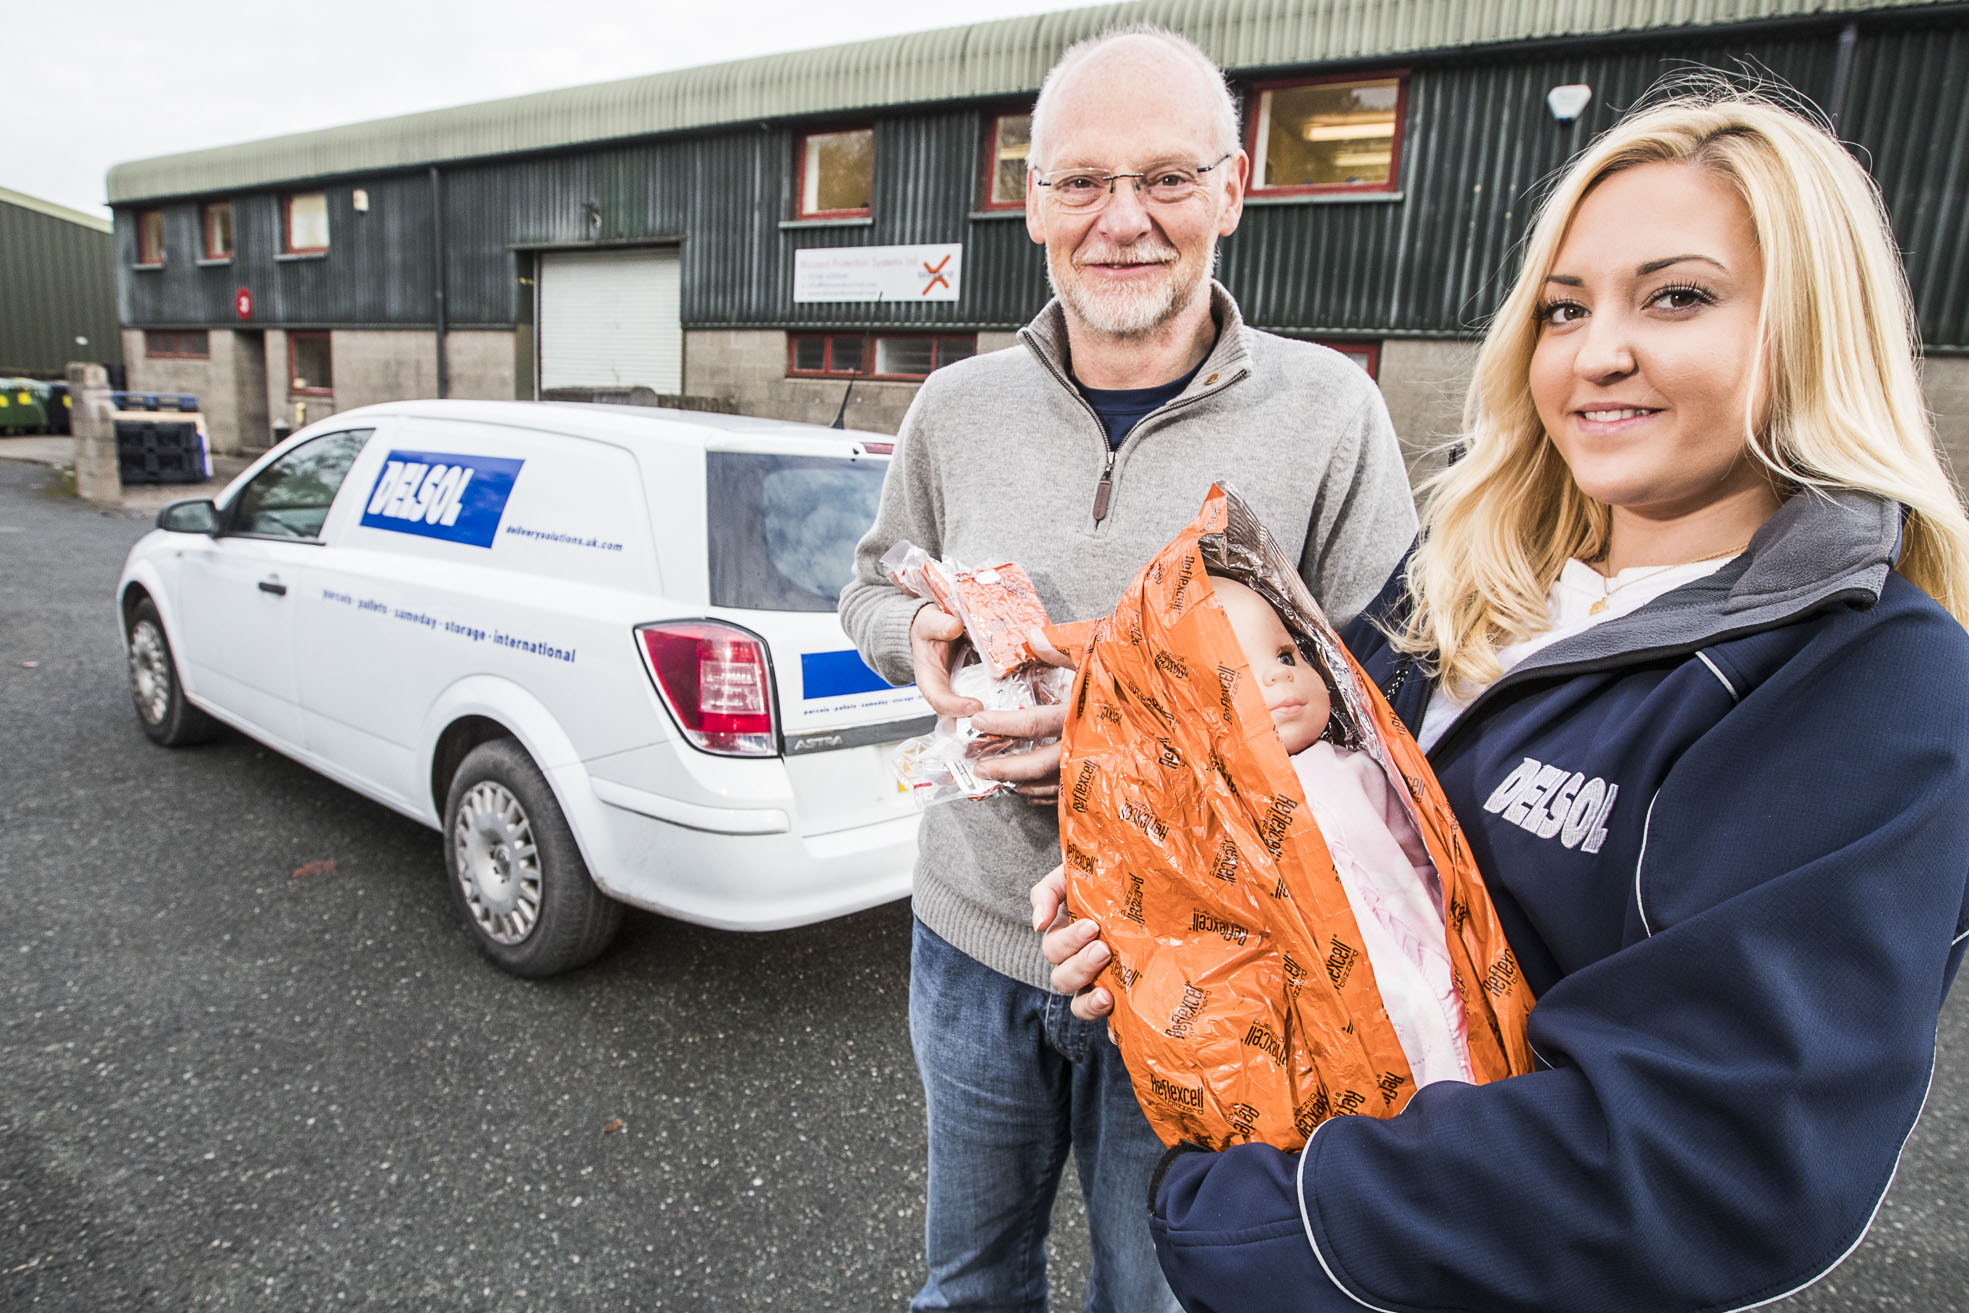 Emergency Help for New Born Babies is on the way thanks to Delivery Company Delsol